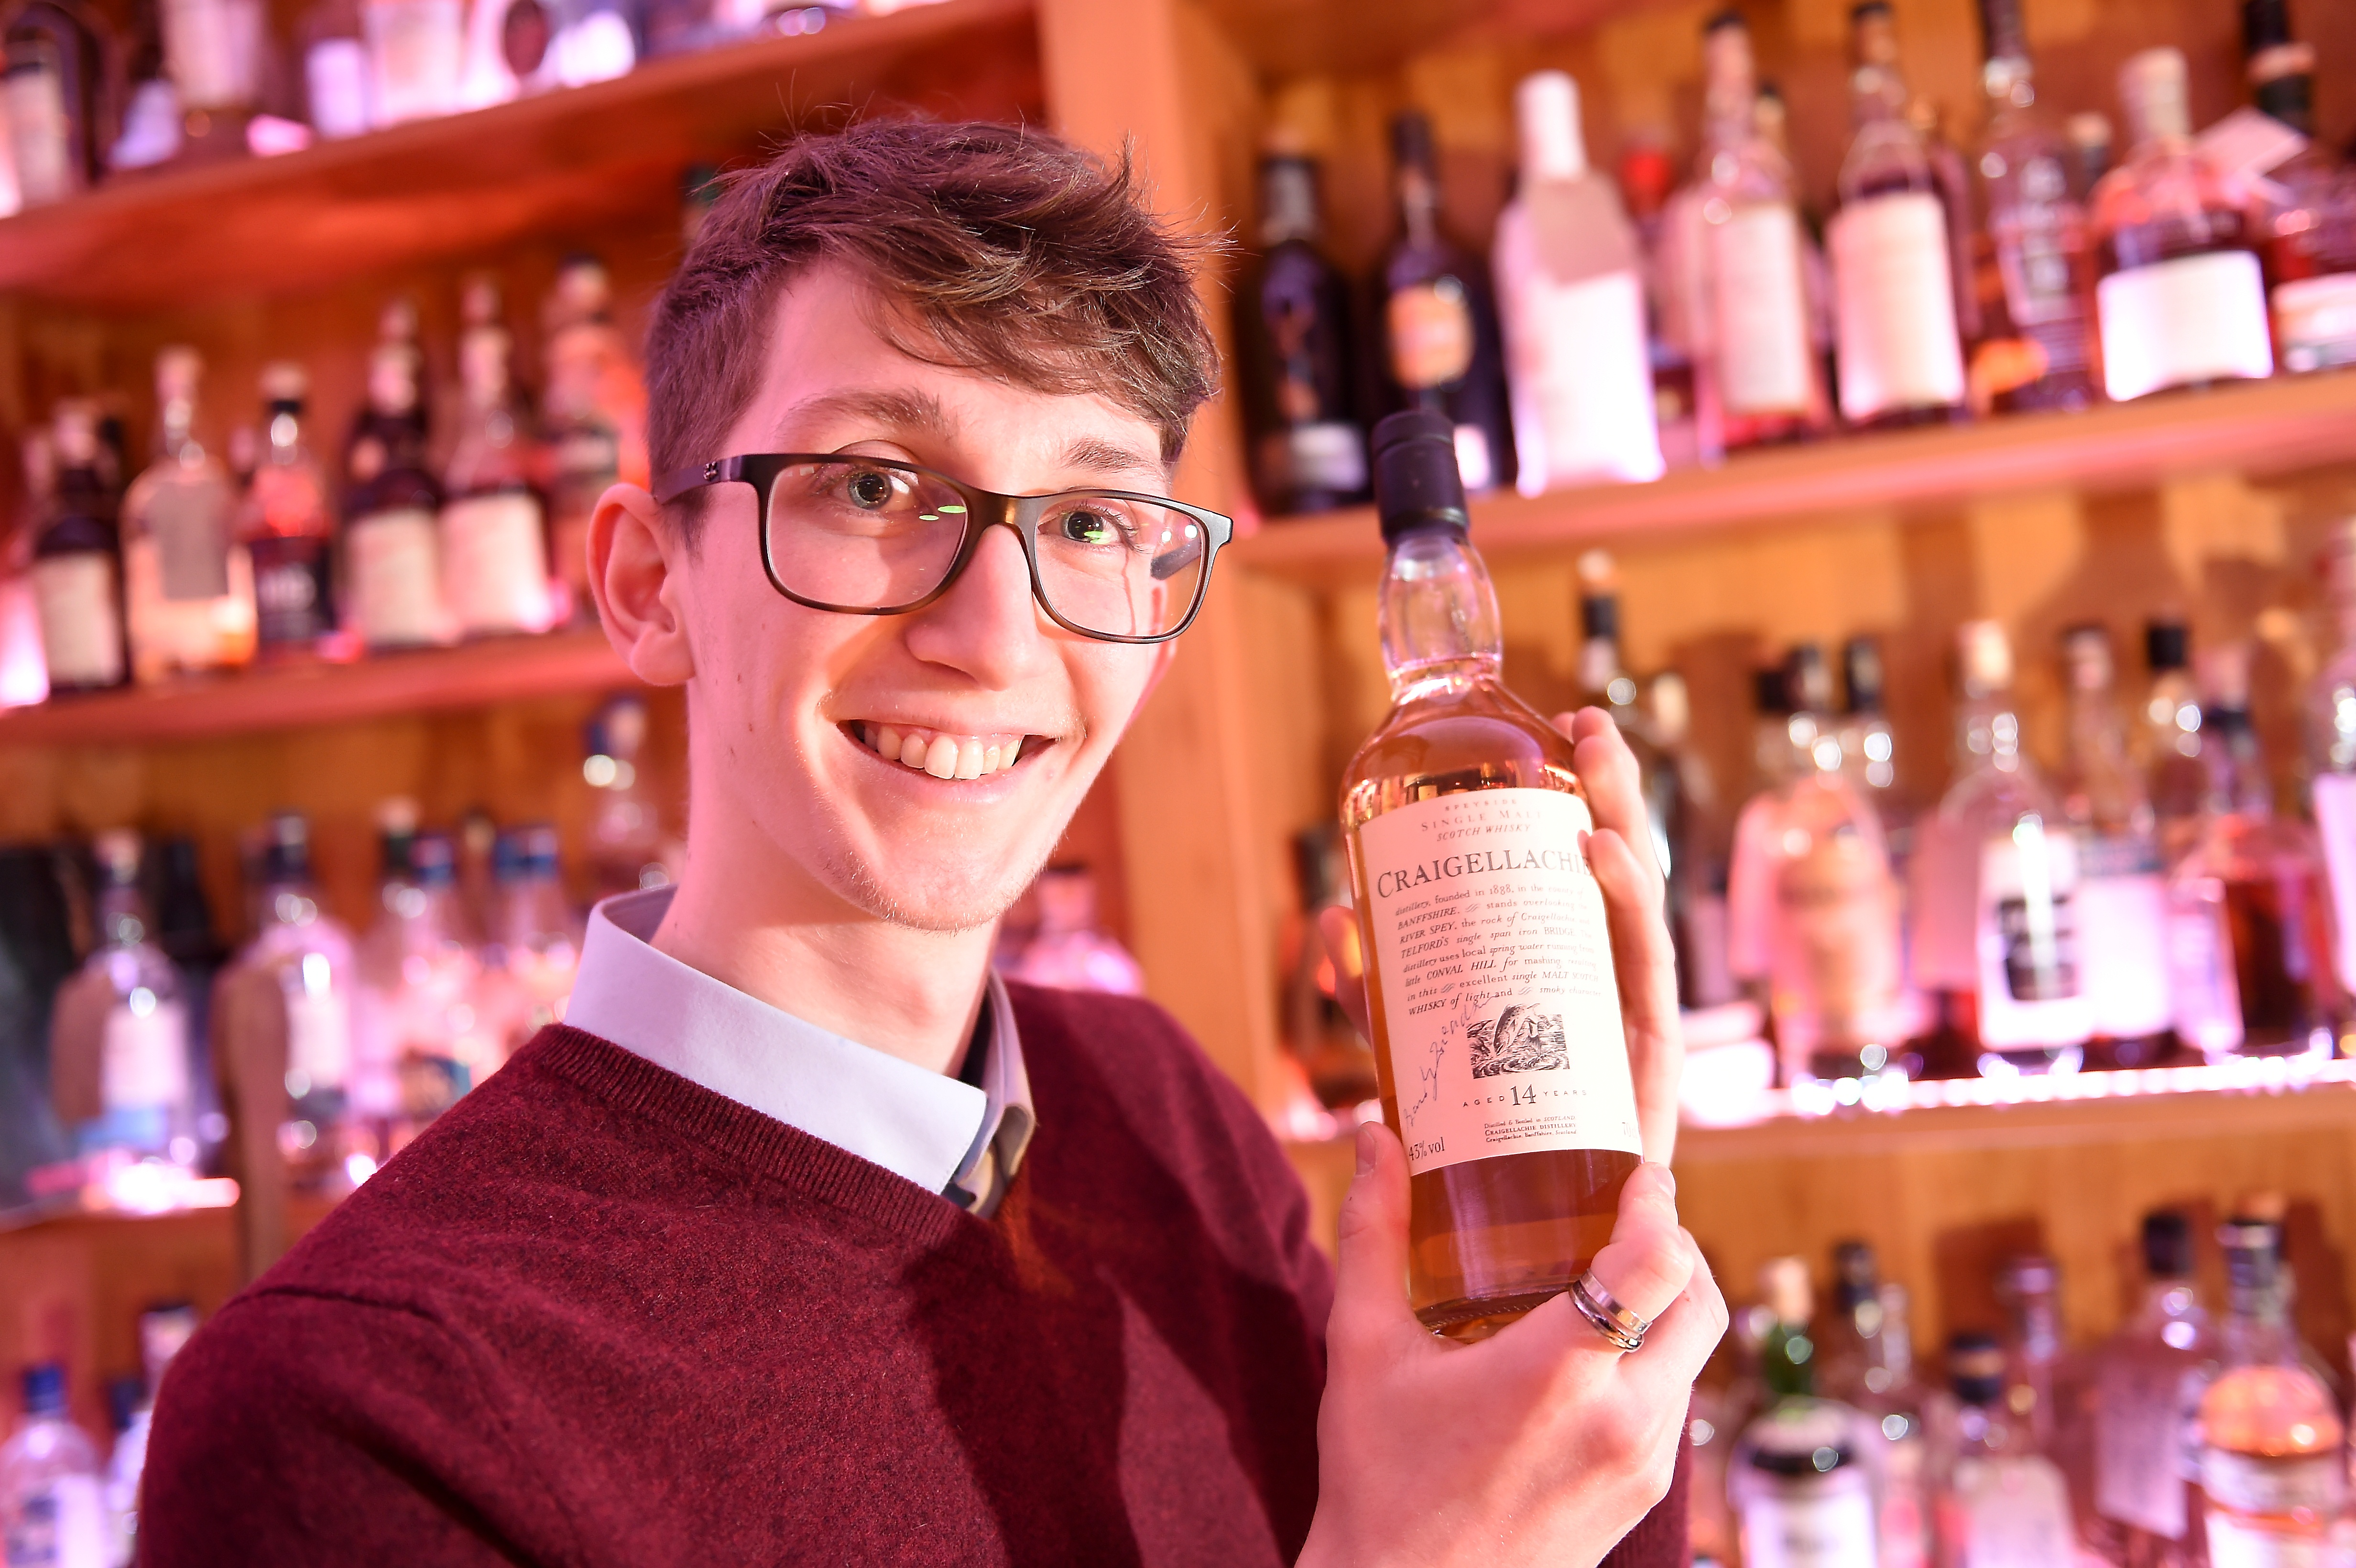 Angus Bryce-McVay is head bar tender at the Craigellachie Hotel.